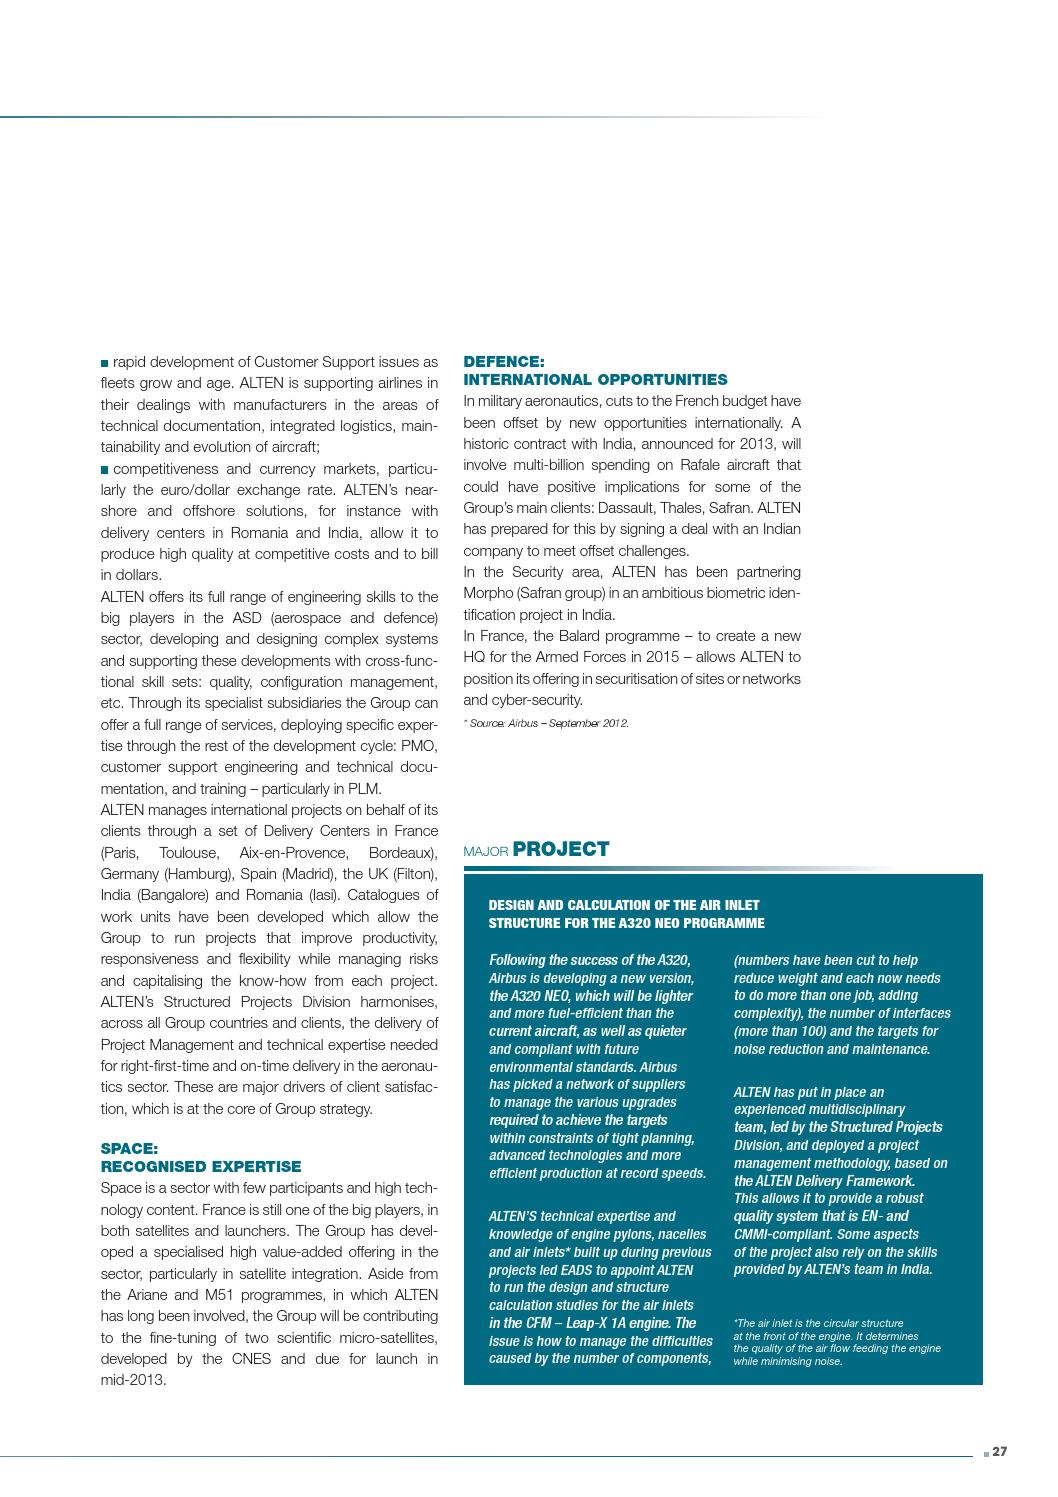 2012 ALTEN annual report by ALTEN_Publications - issuu